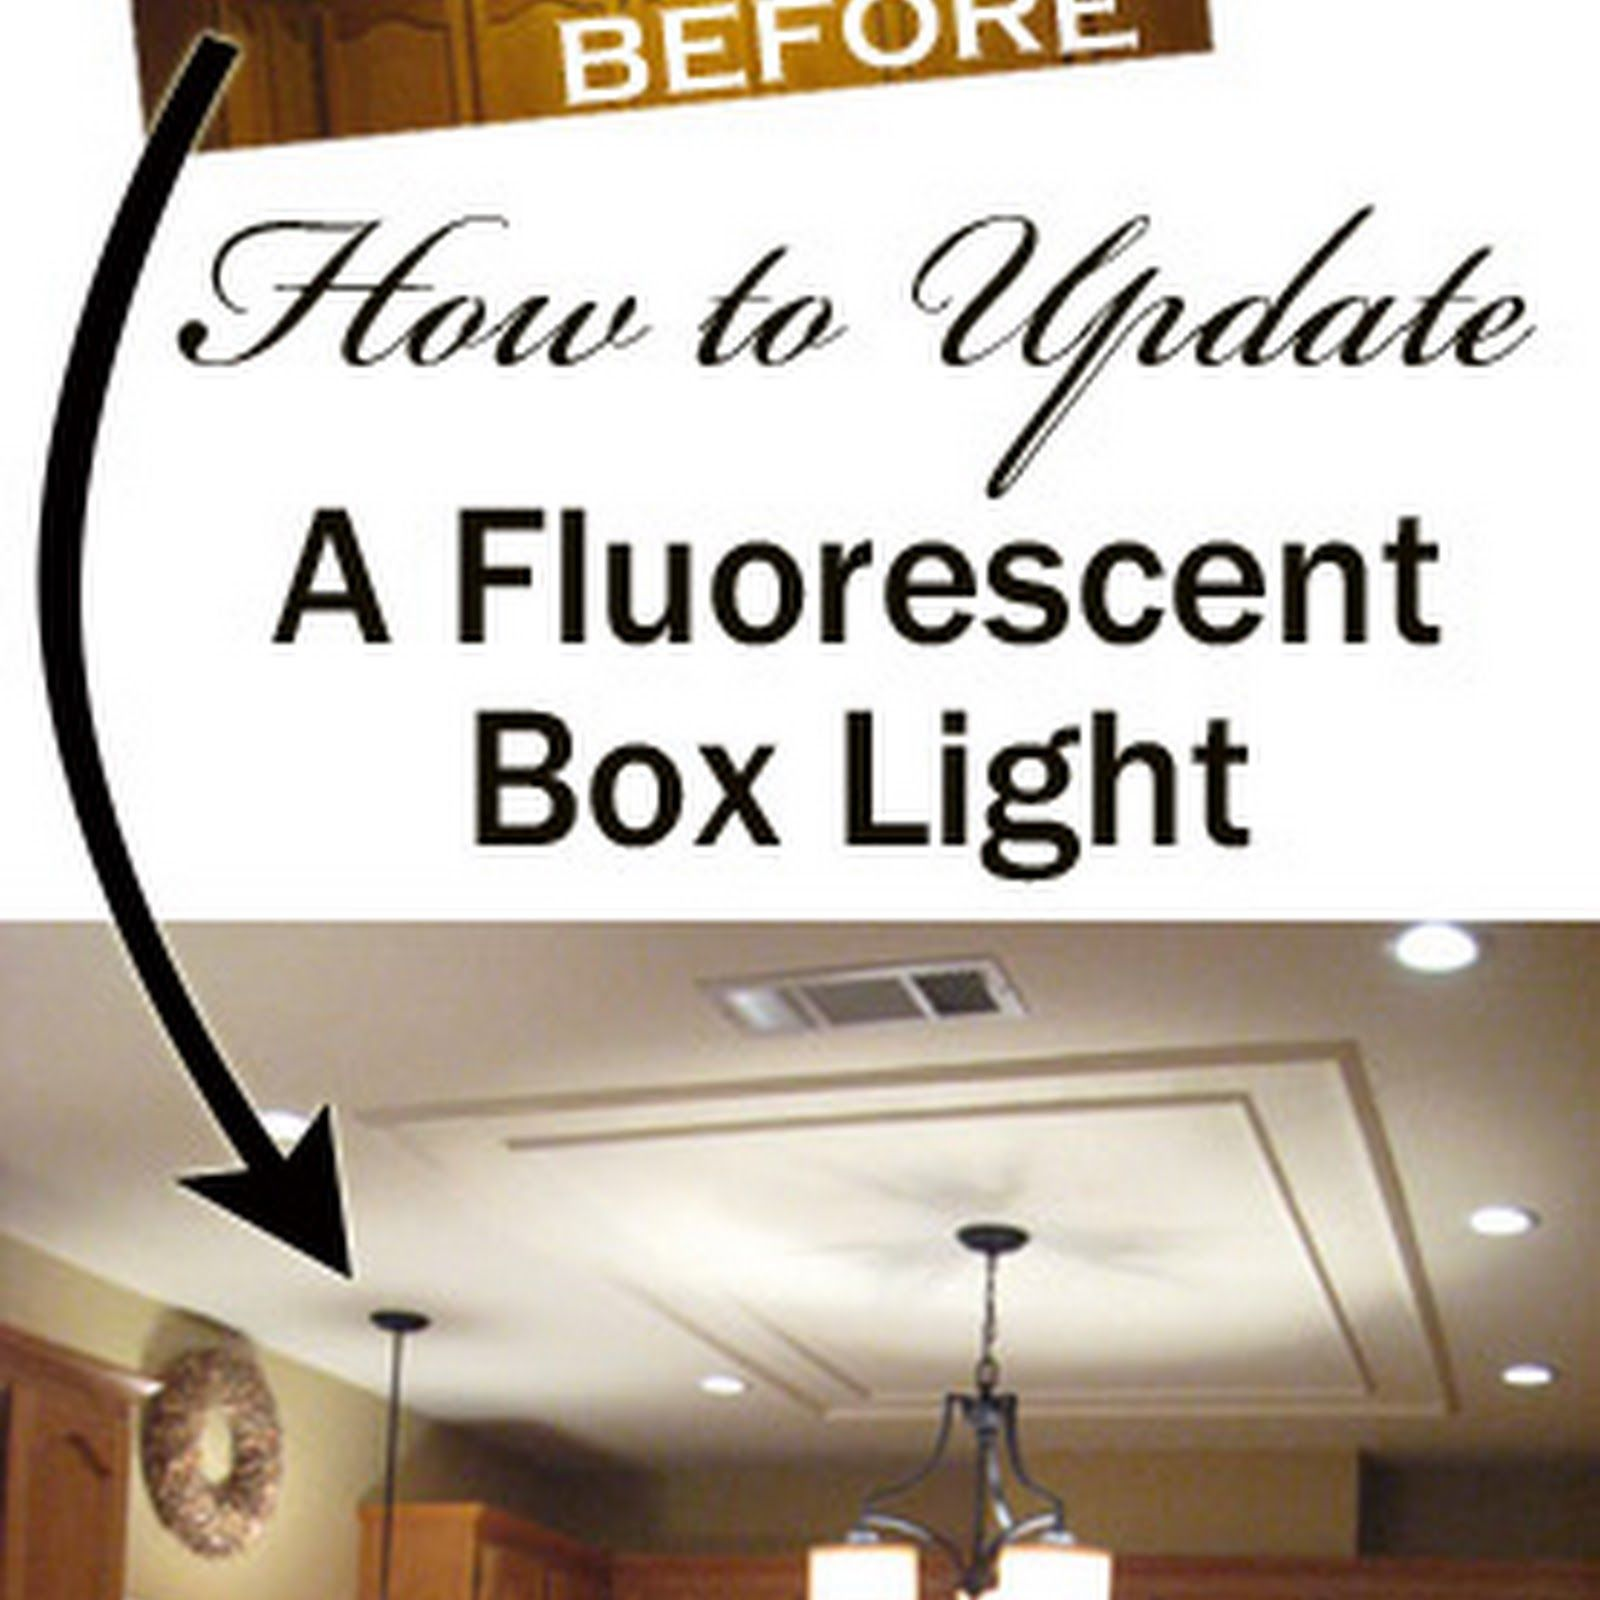 Kitchen Fluorescent Light Fixture Covers A Great Idea For Updating The Ugly Fluorescent Light Box Without